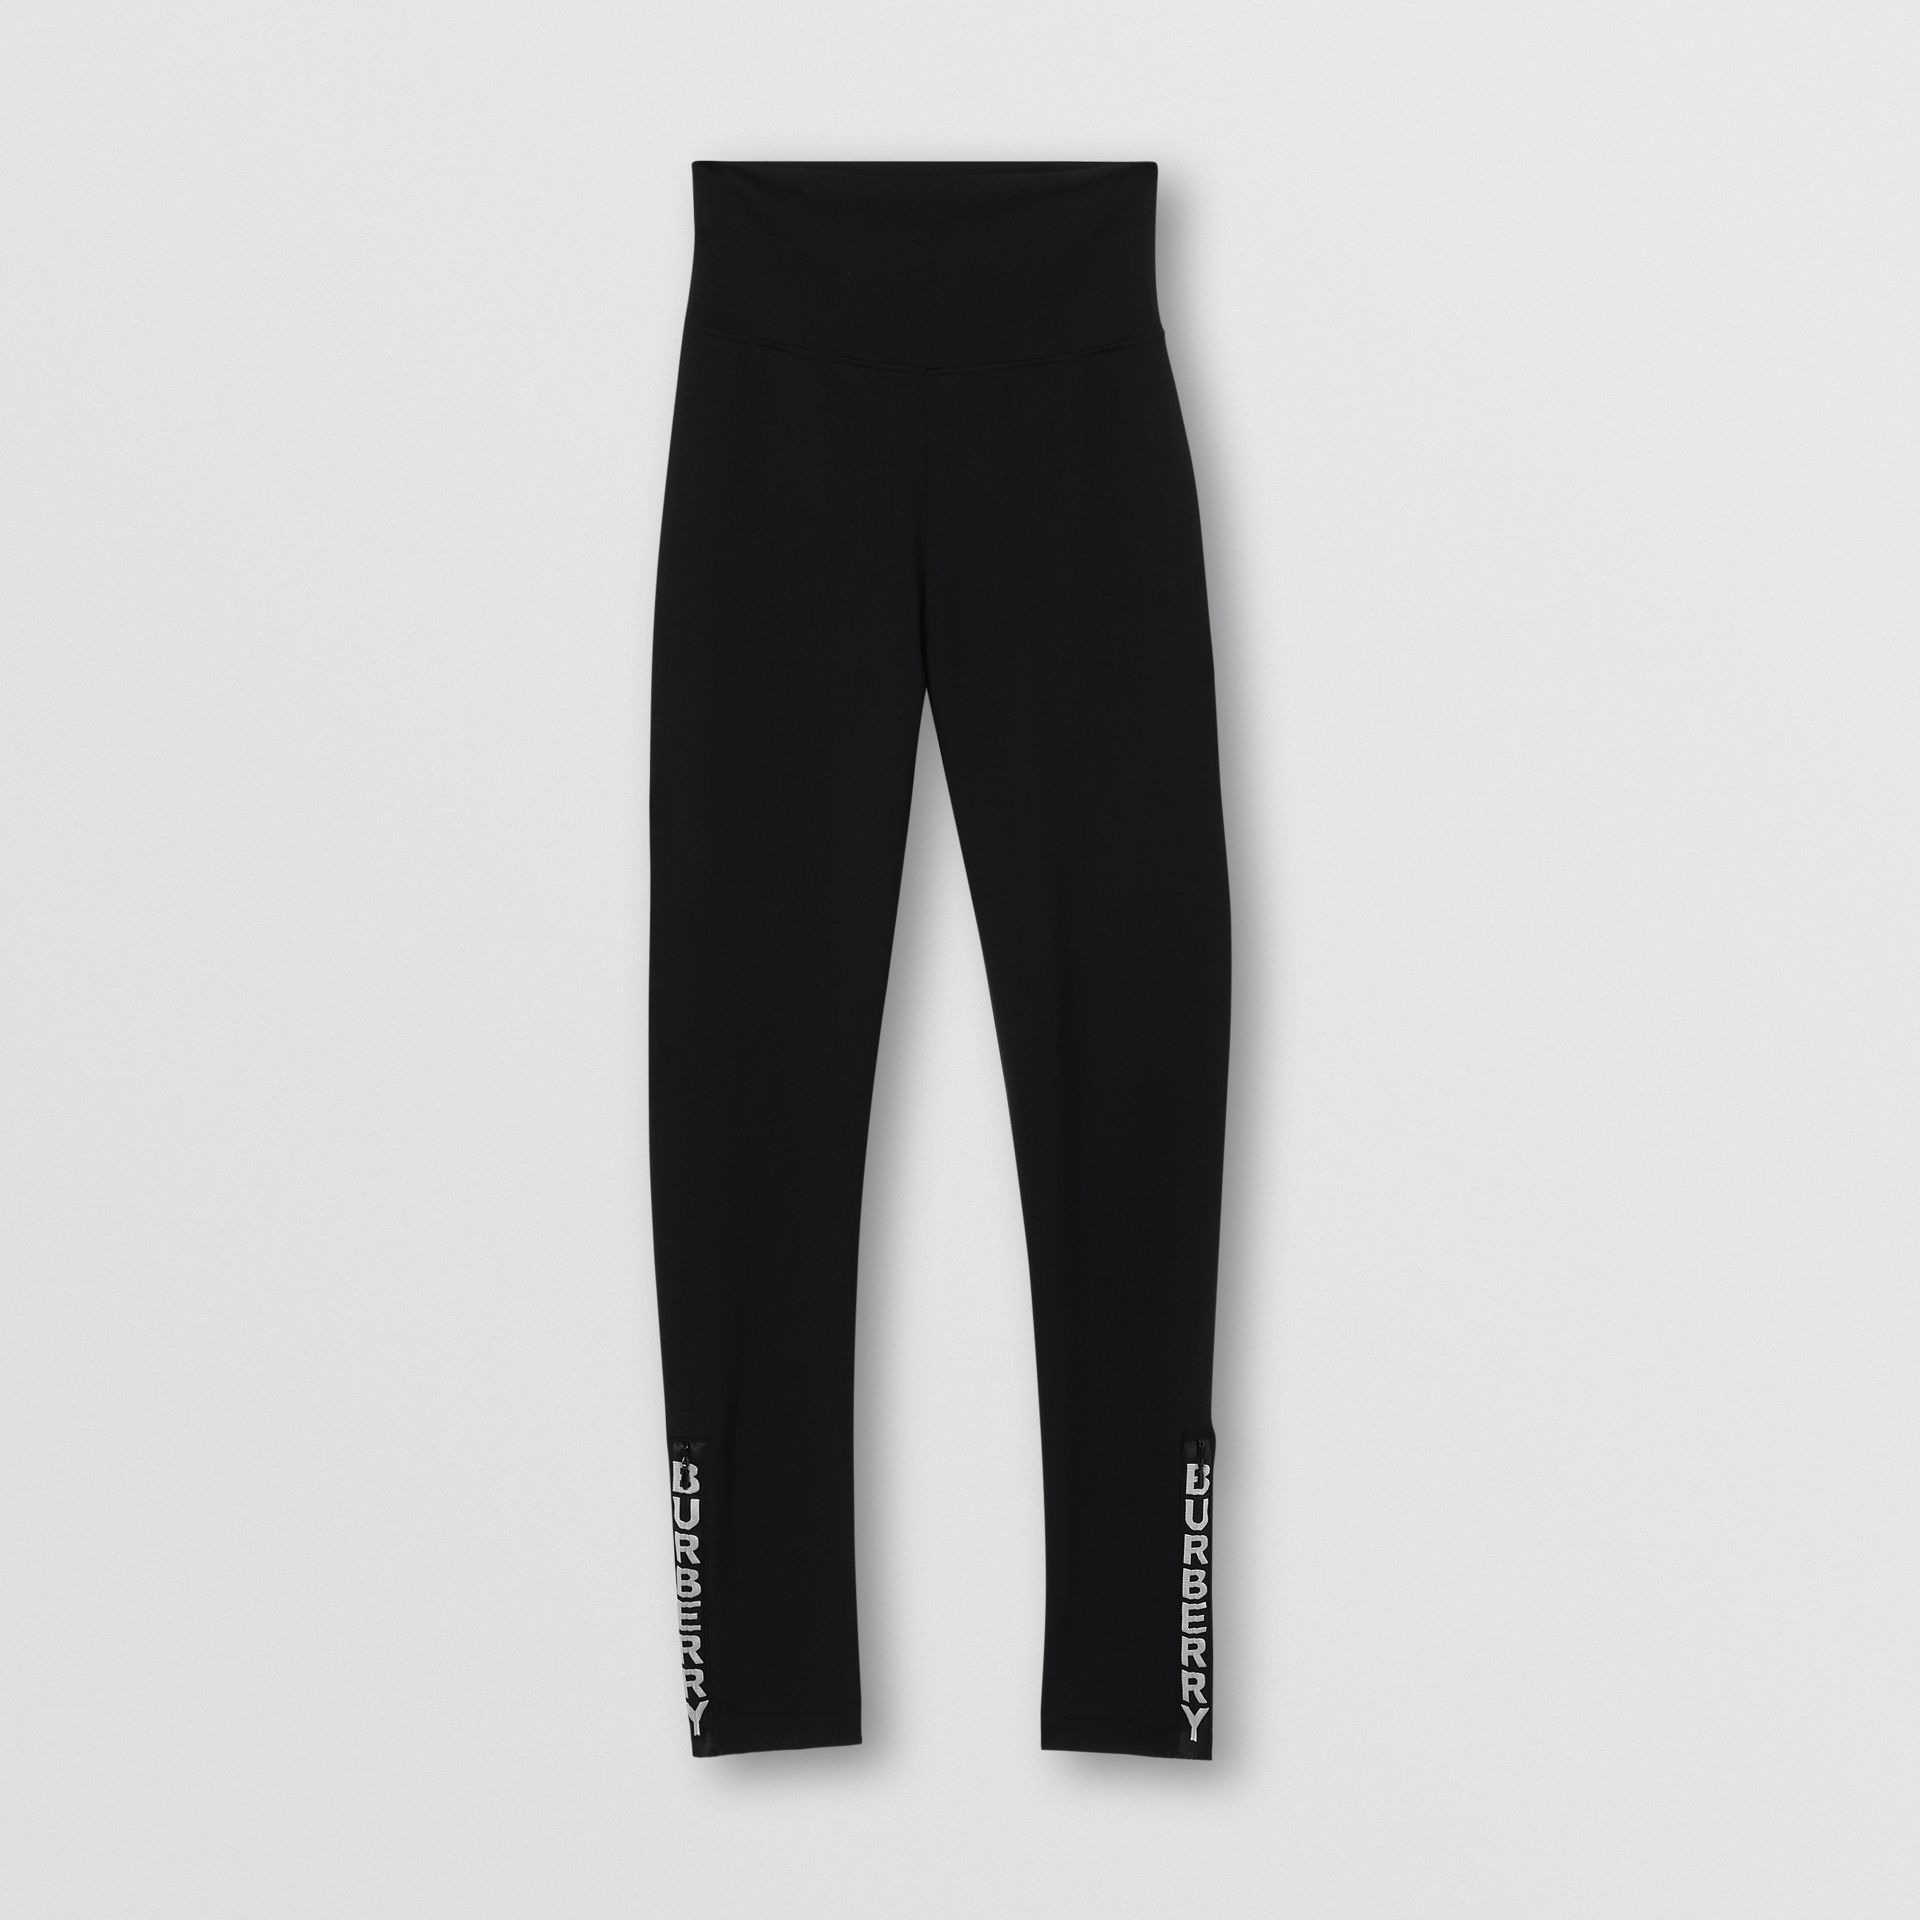 Legging en jersey stretch avec logo (Noir) - Femme | Burberry Canada - photo de la galerie 3